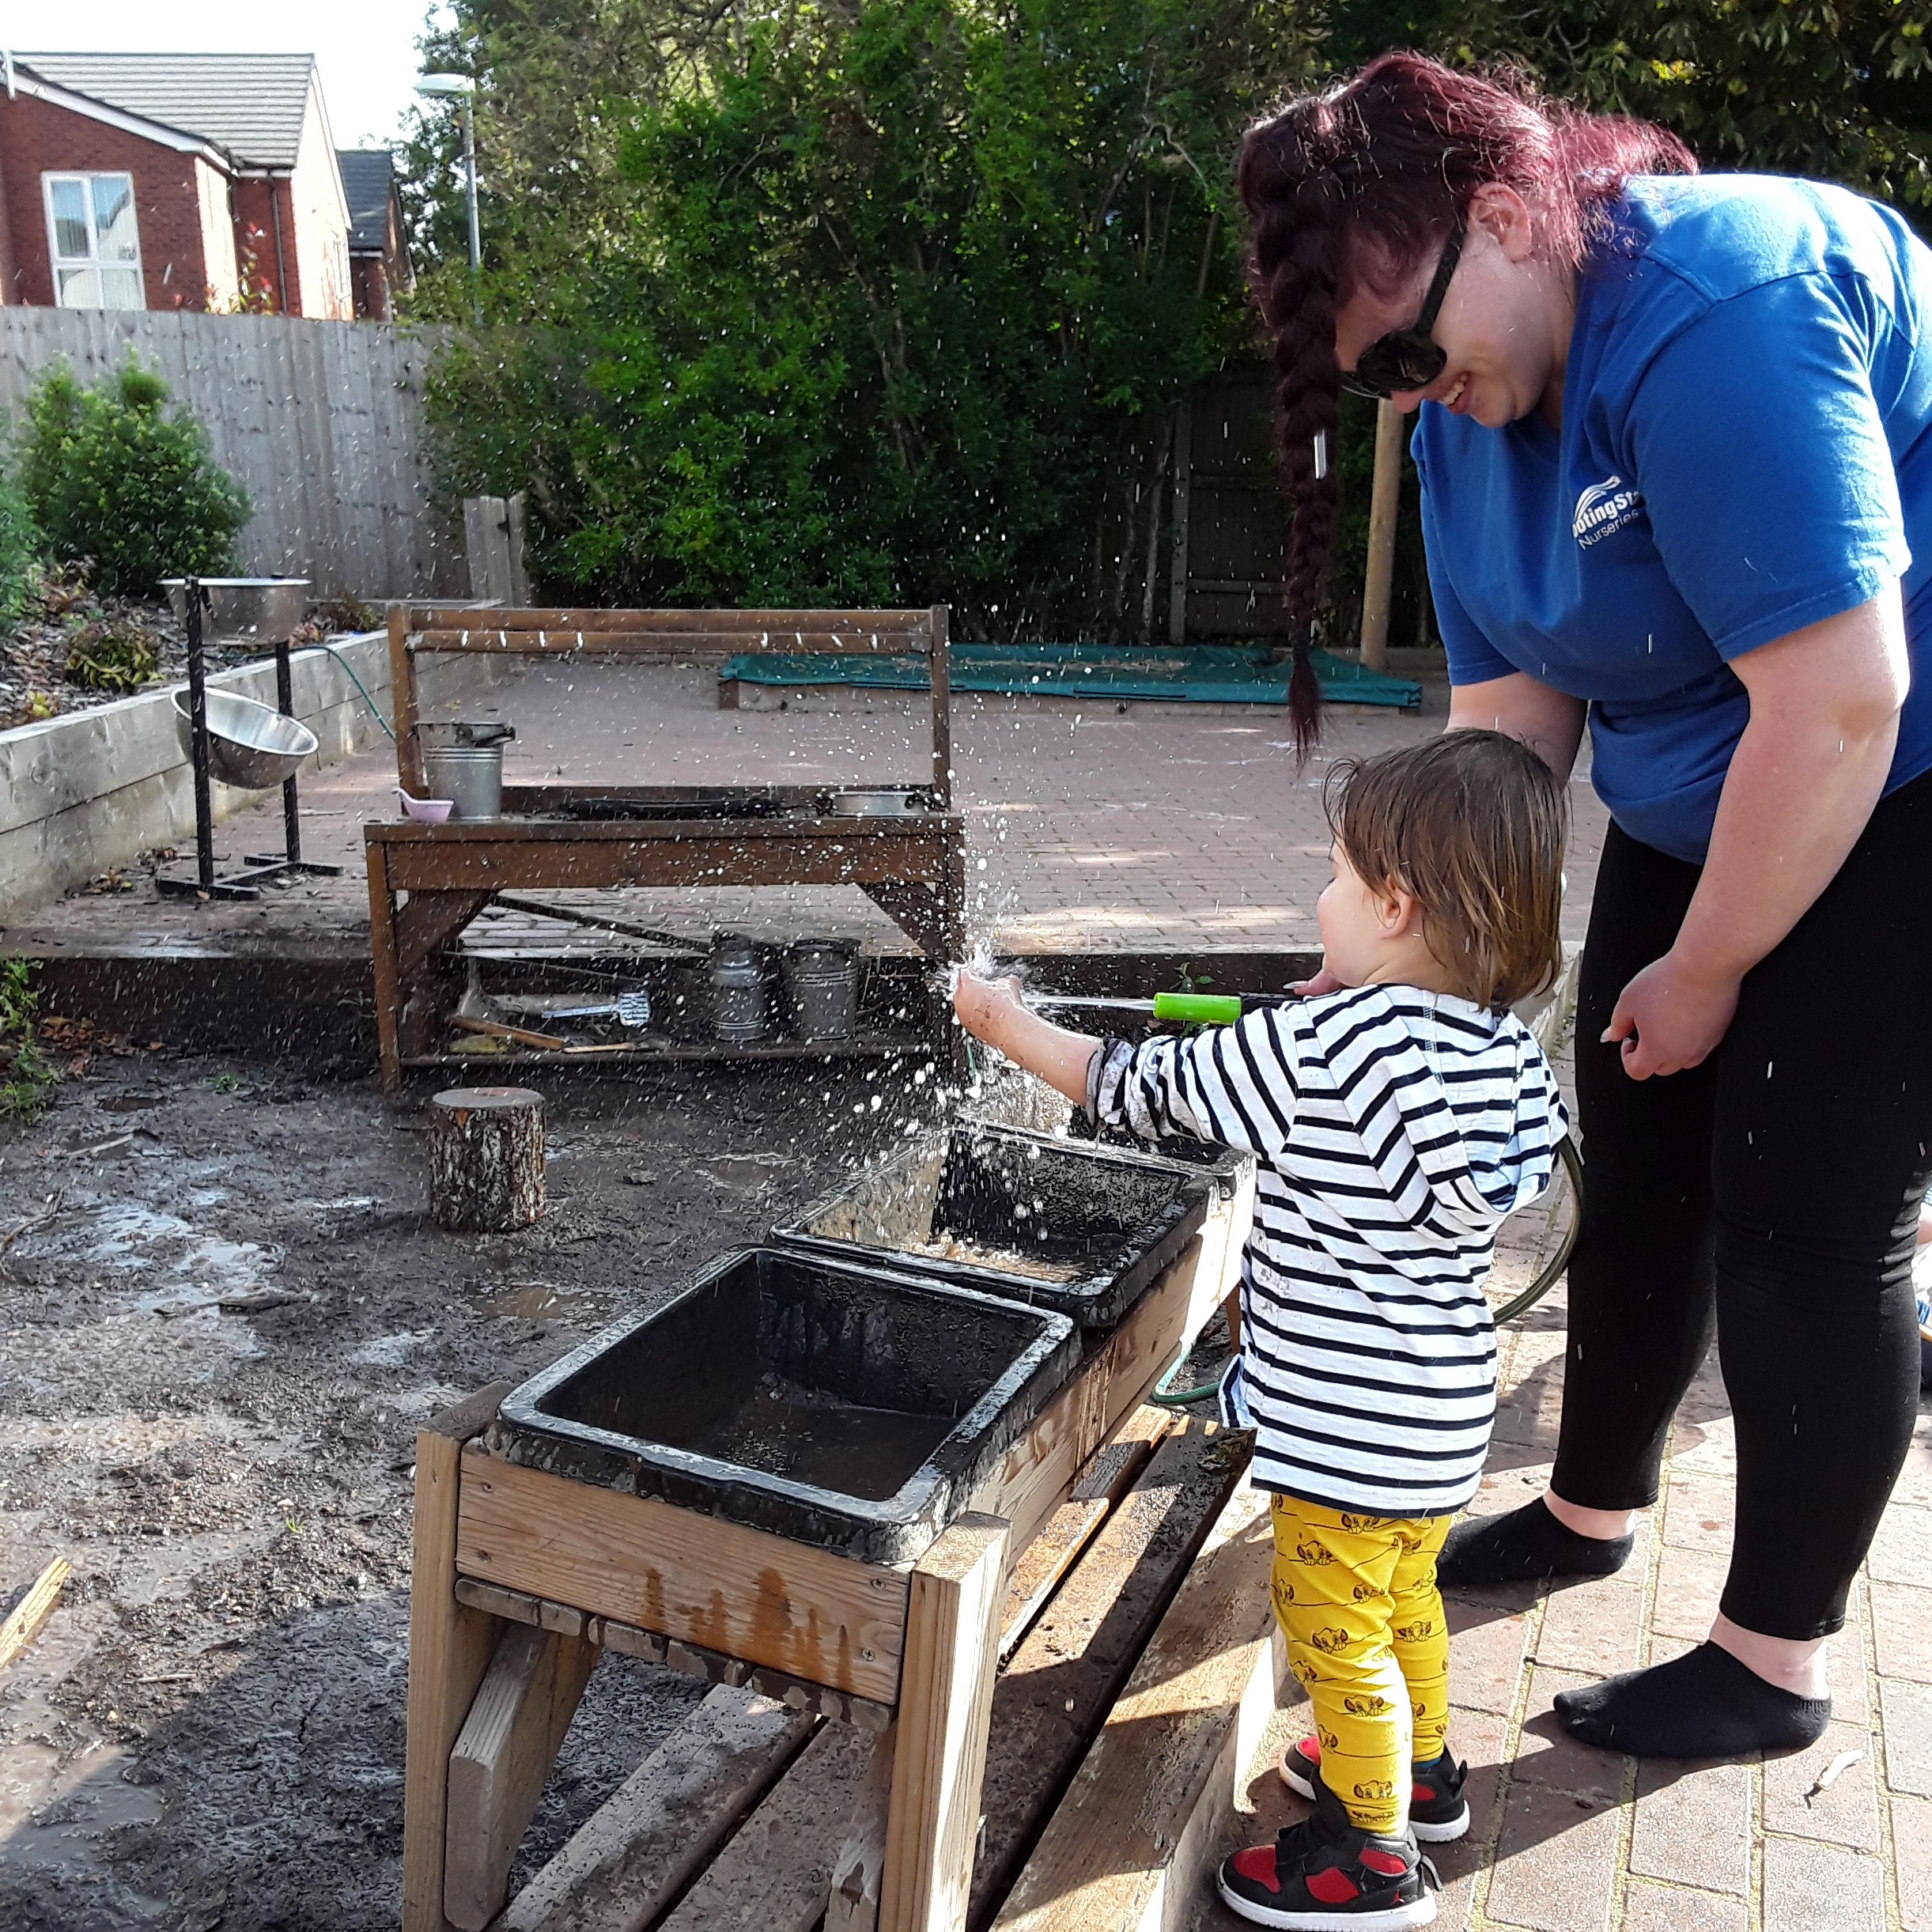 The Kings Norton Pretoddlers have been exploring nature in the lovely weather this week